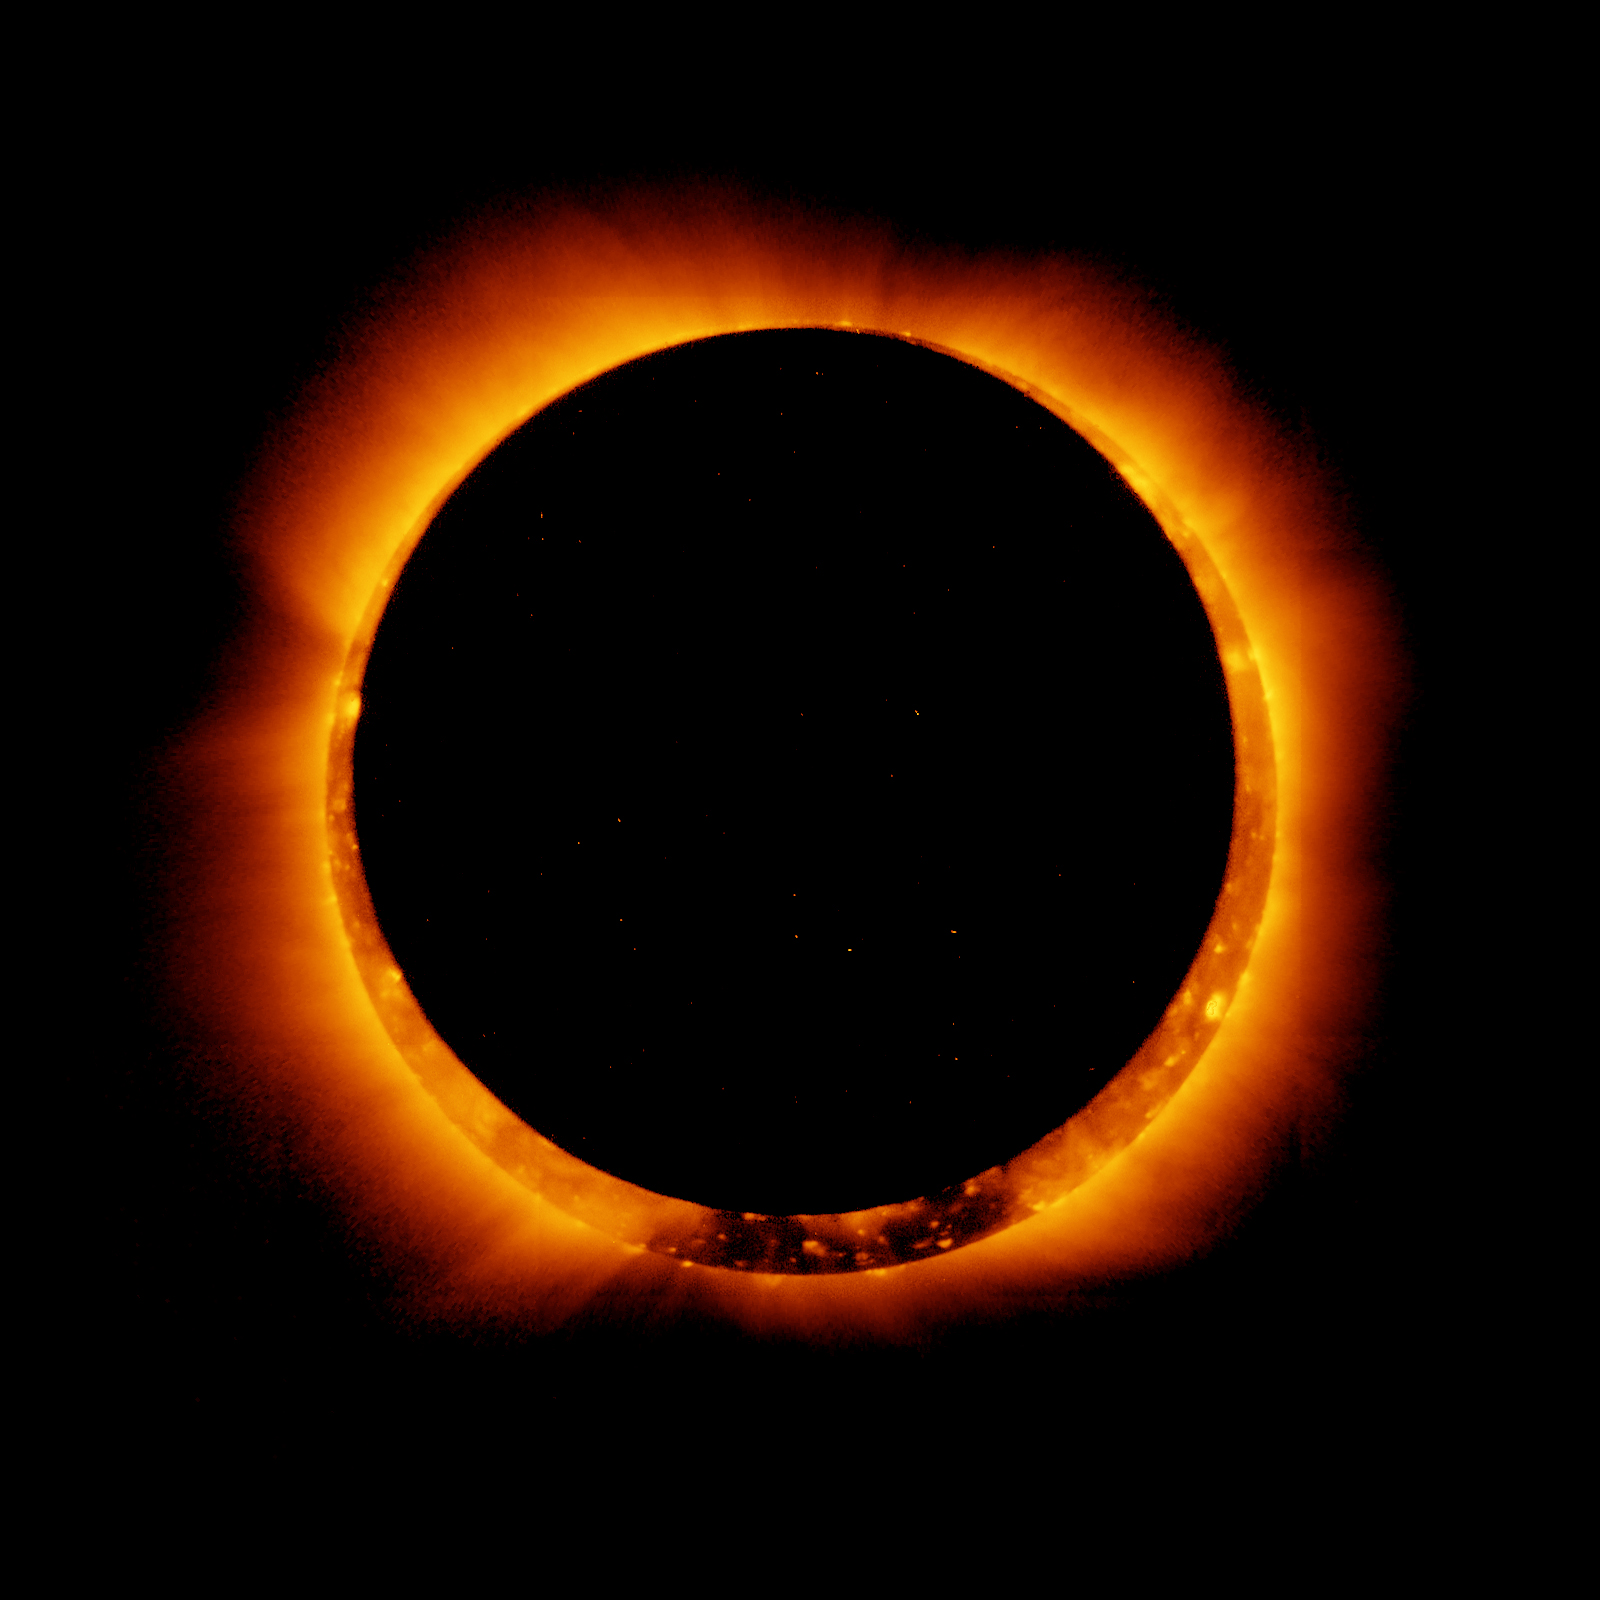 Hinode Observes Annular Solar Eclipse | NASA